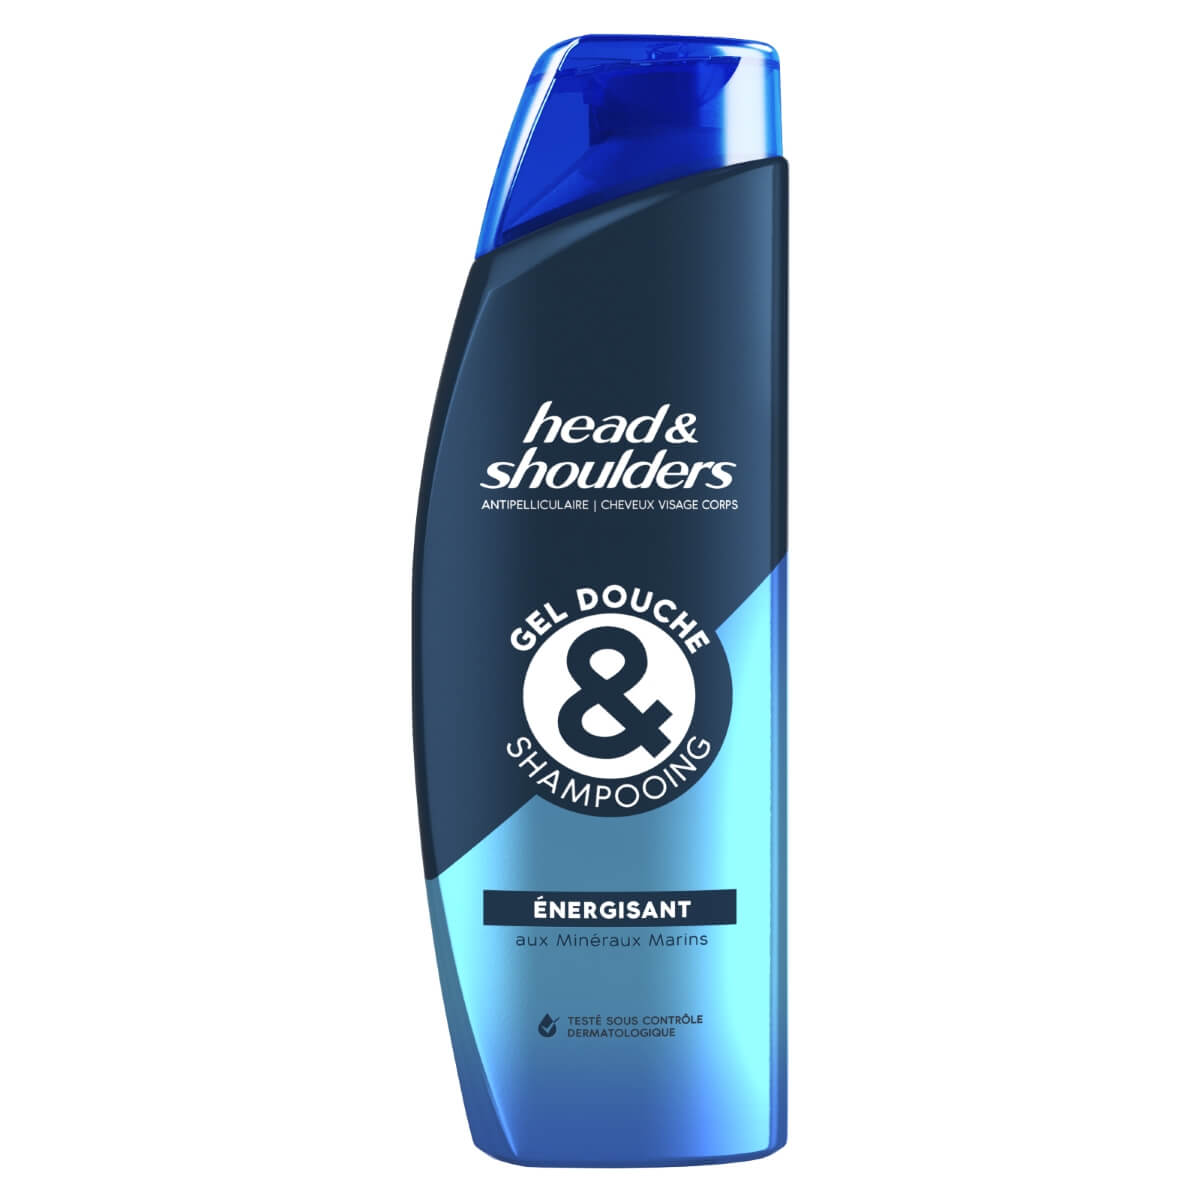 Head & Shoulders Energisant, Gel douche et shampoing